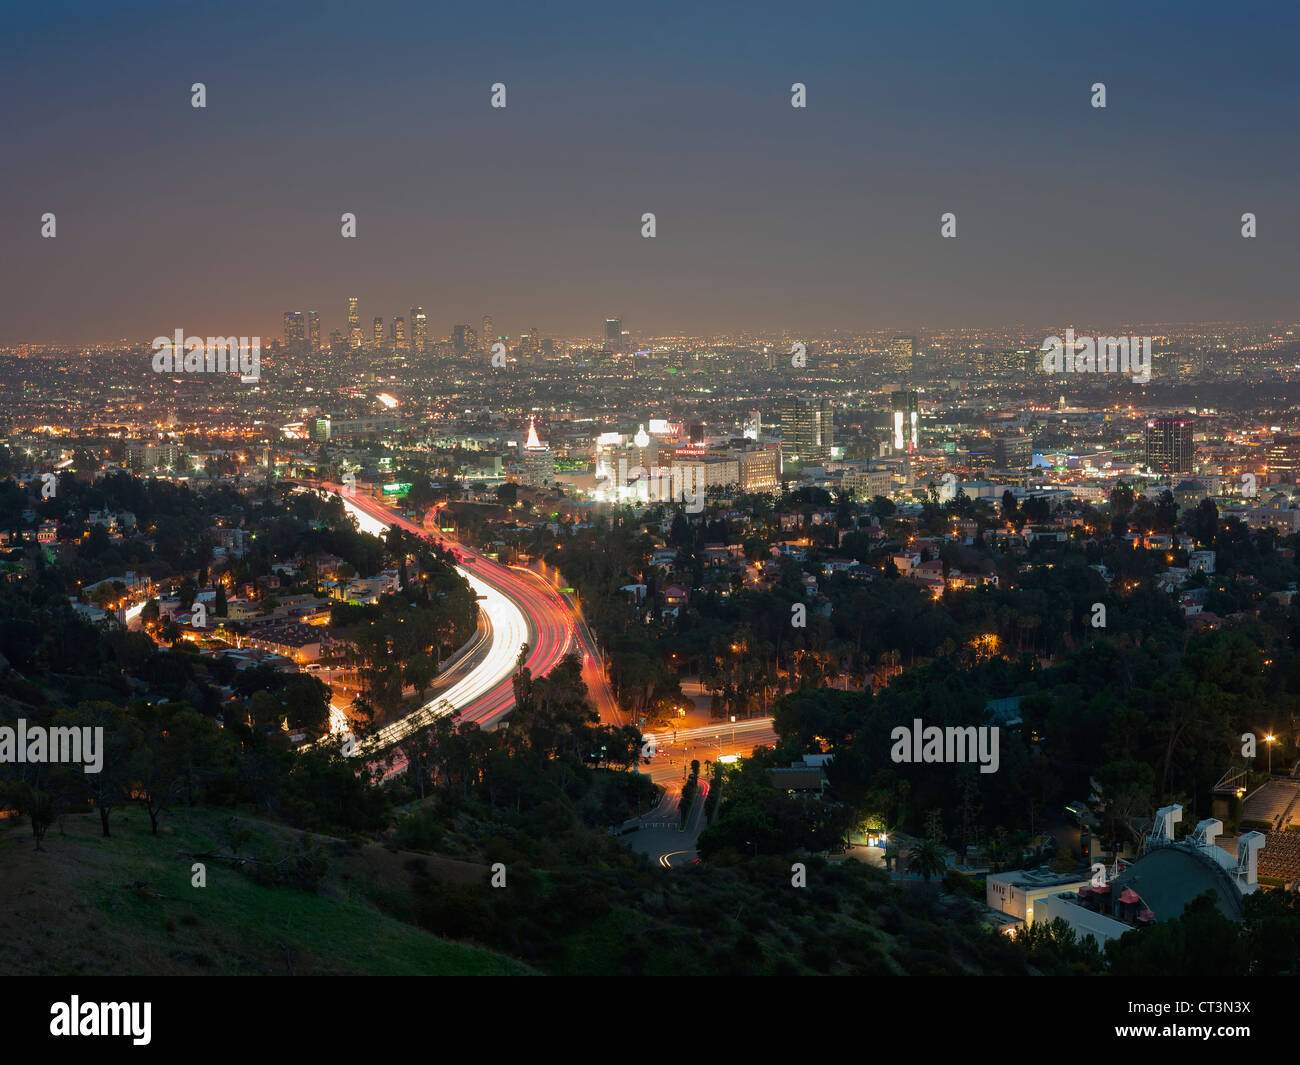 Aerial view of Los Angeles at night - Stock Image